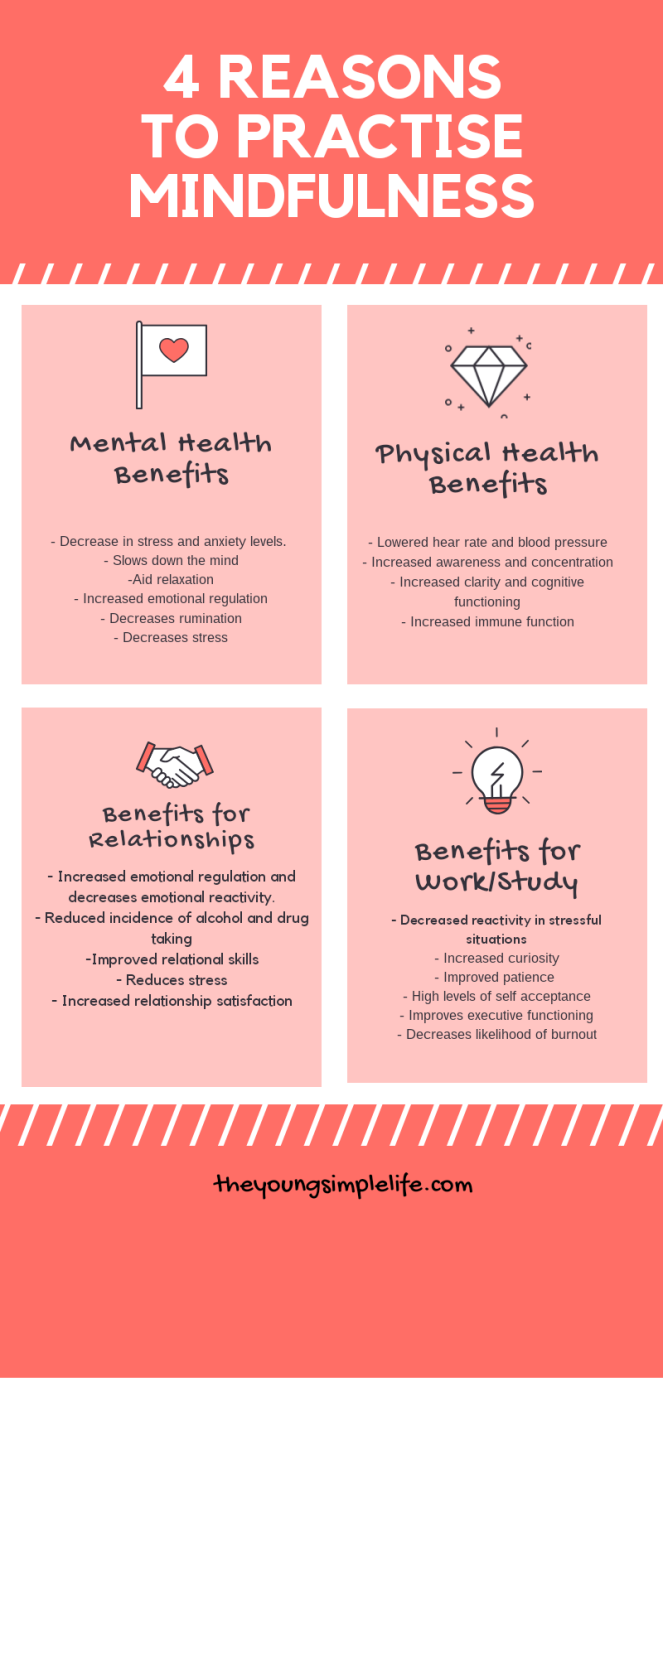 Pink background reasons for the benefits of mindfulness, work relationships mental health physical health